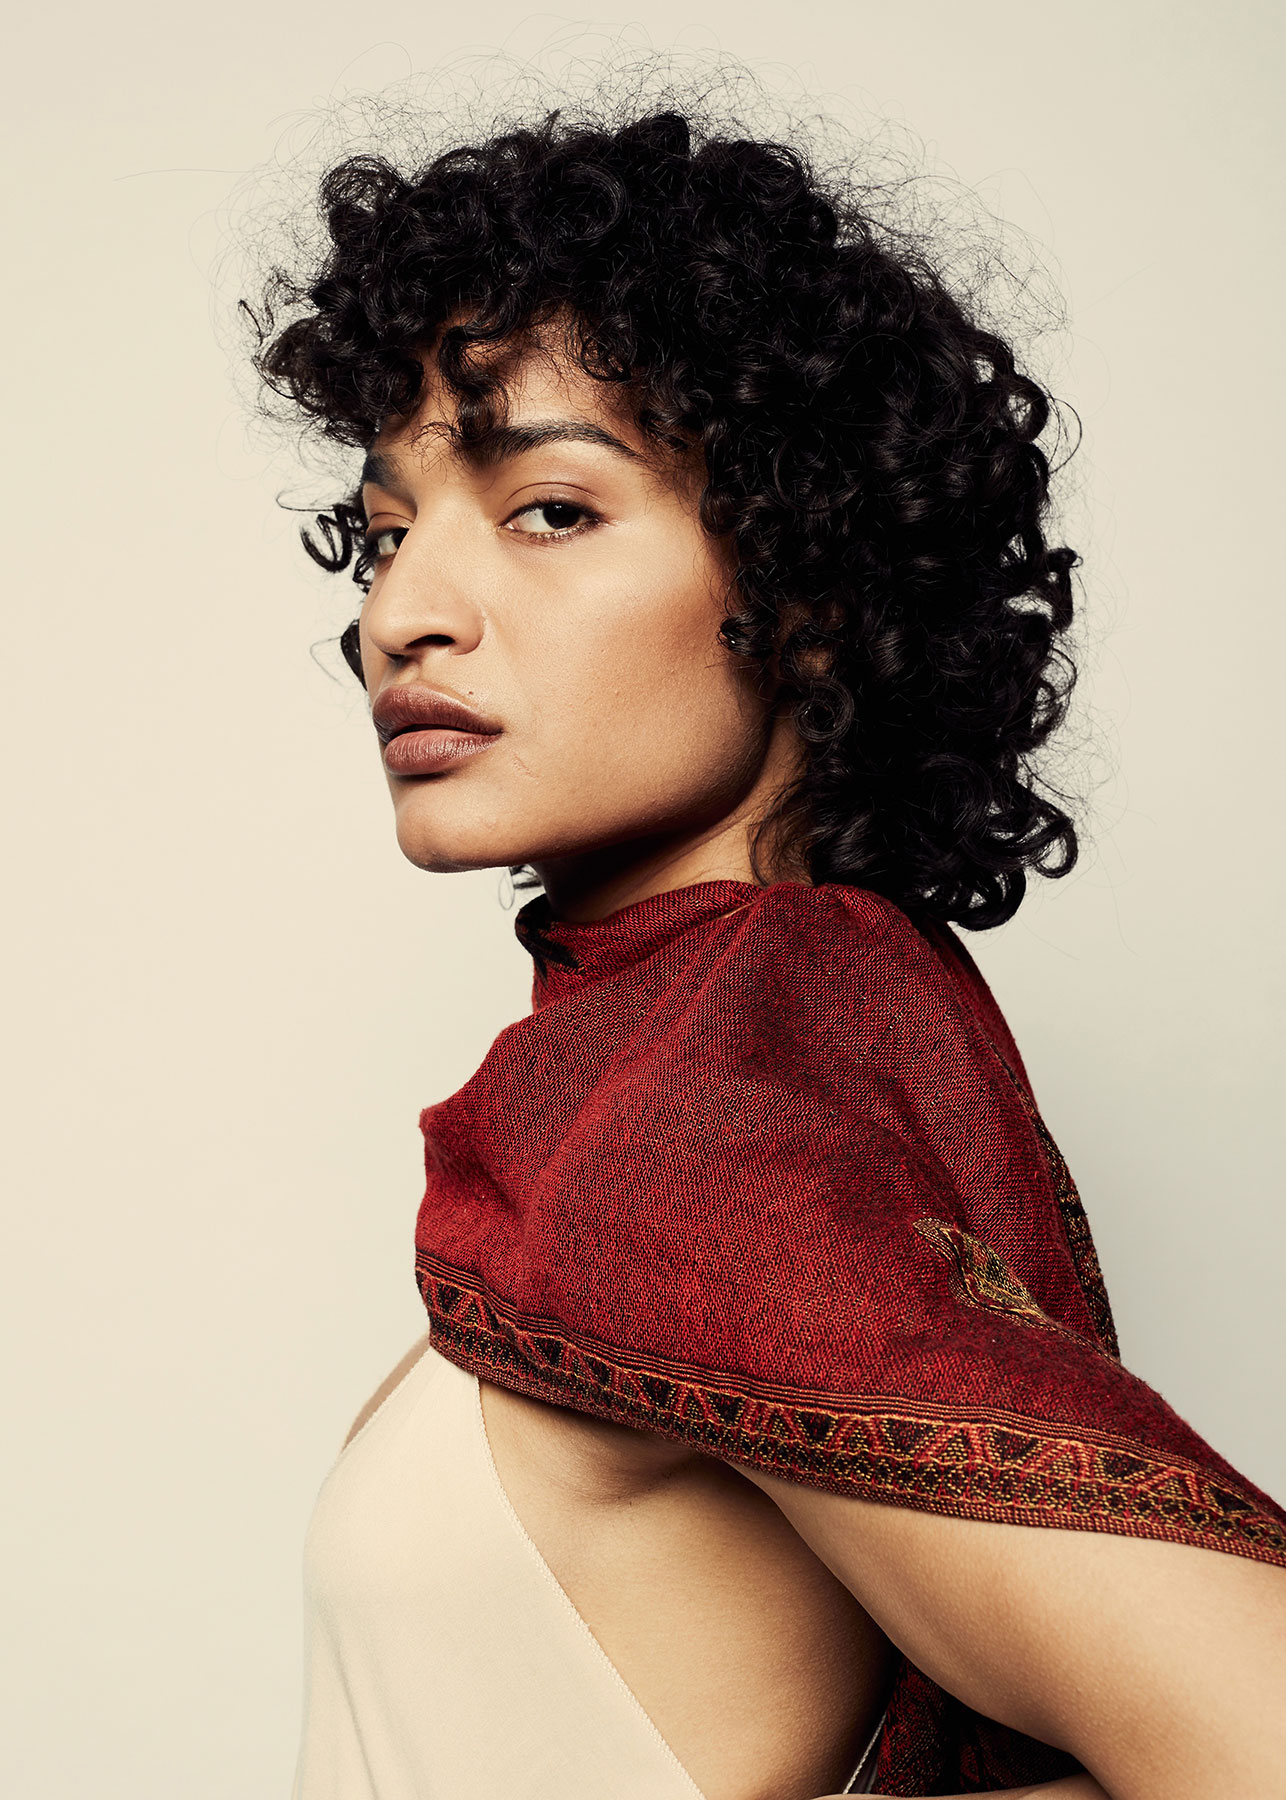 Actor Indya Moore